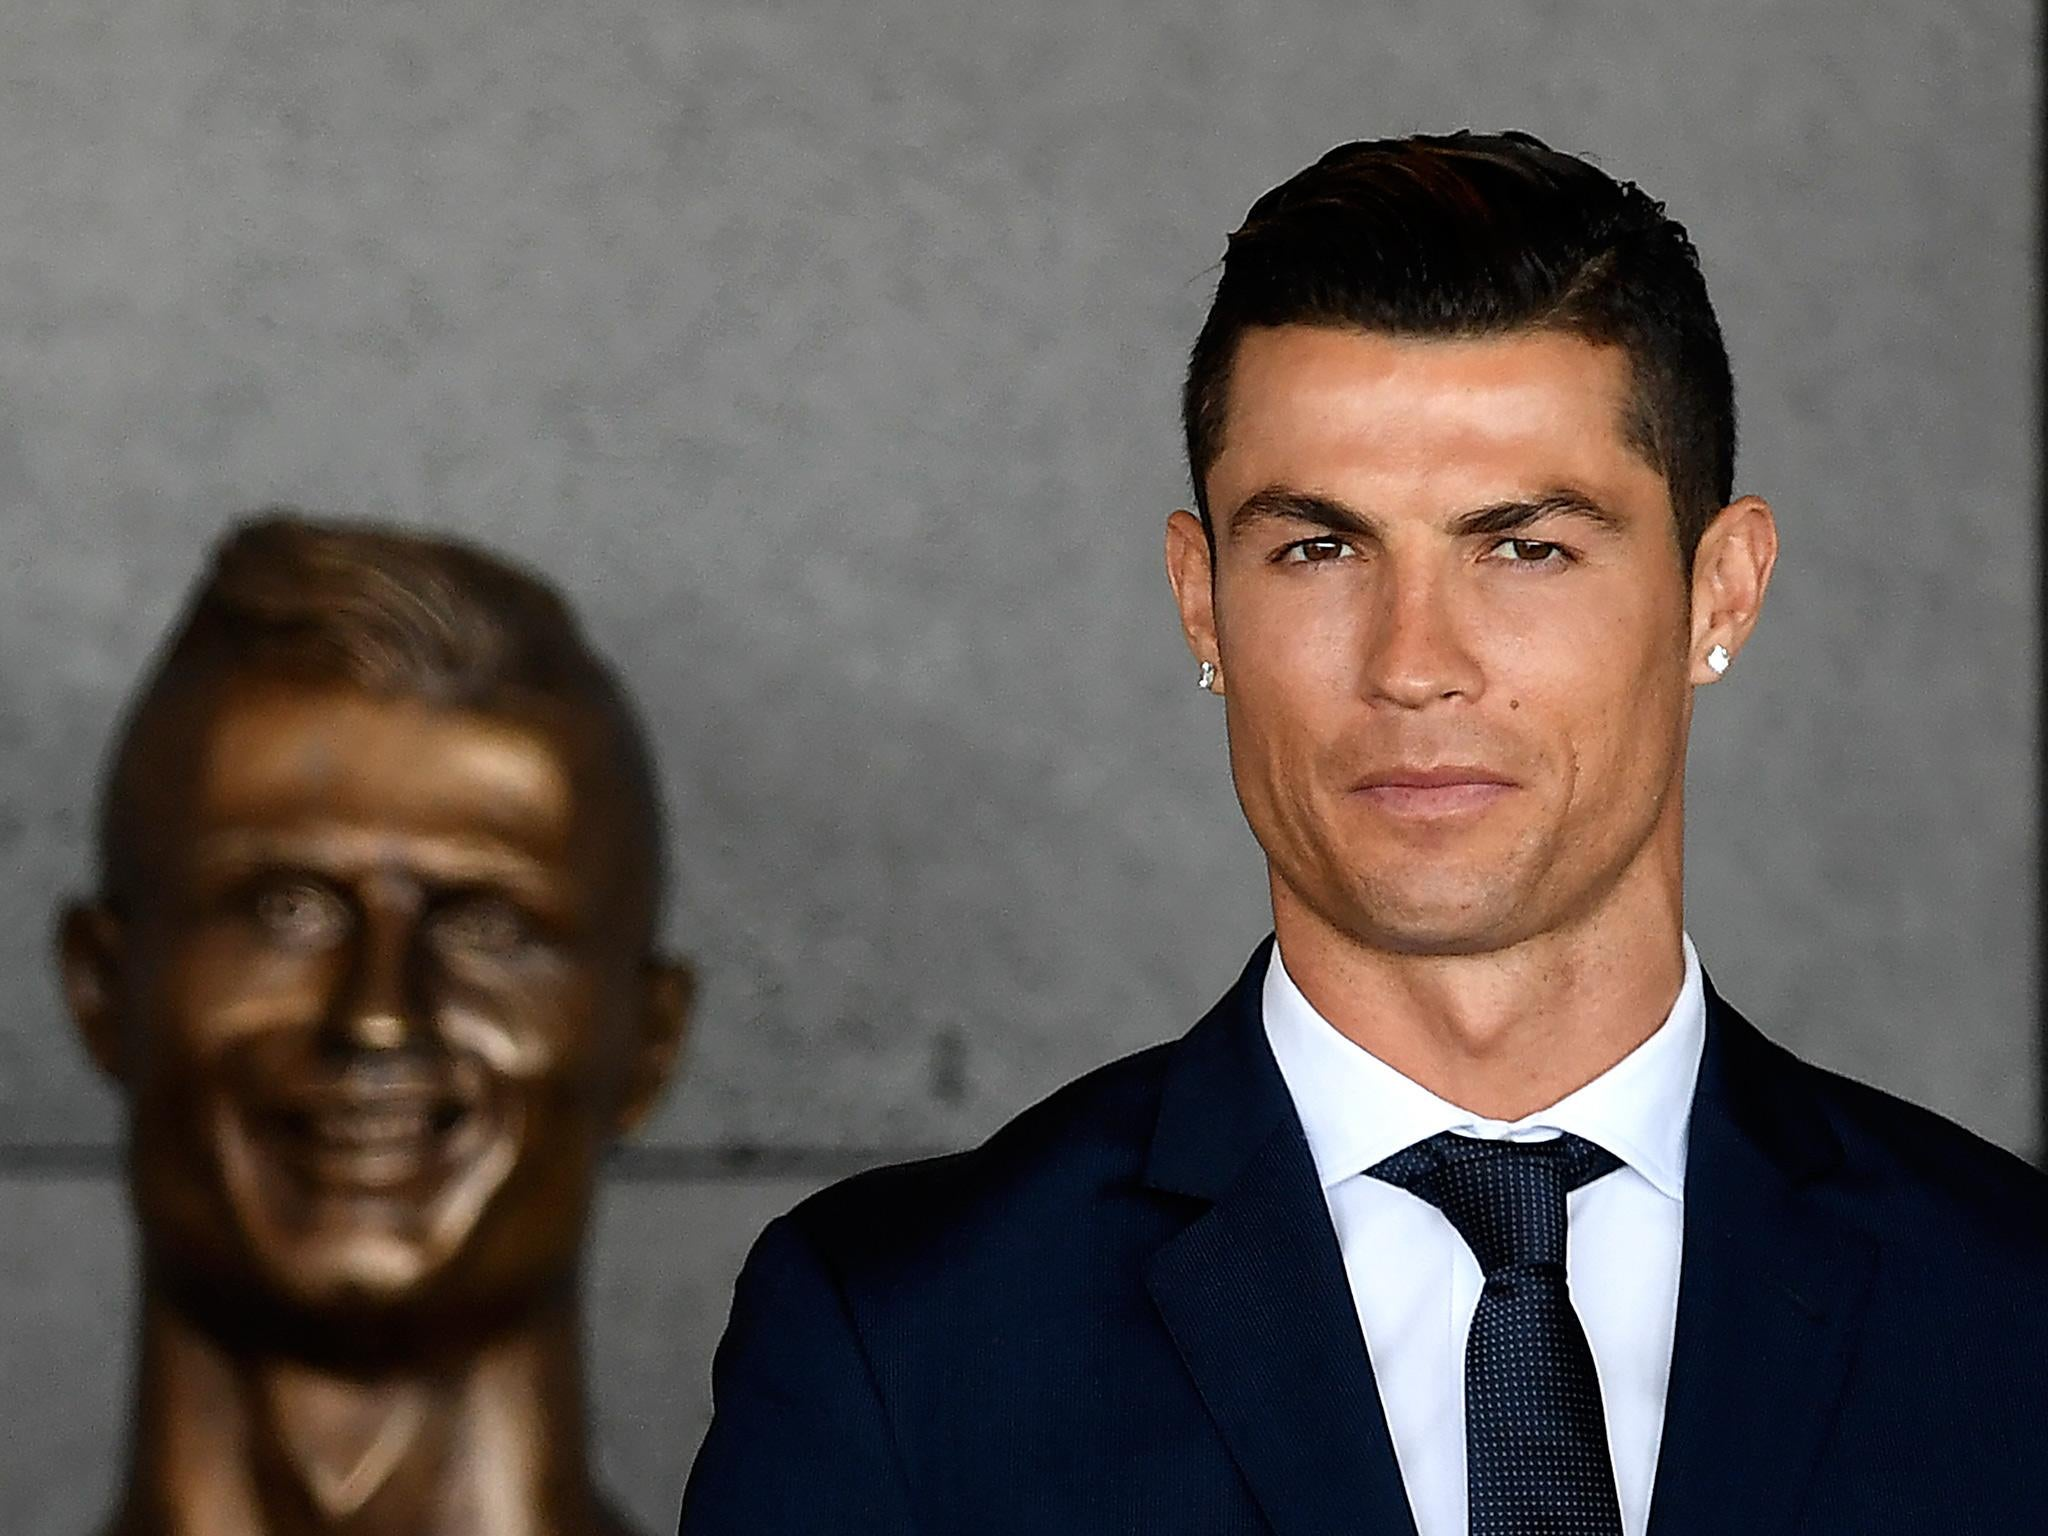 b6c4043c0 7 important questions we have about the Cristiano Ronaldo statue at ...